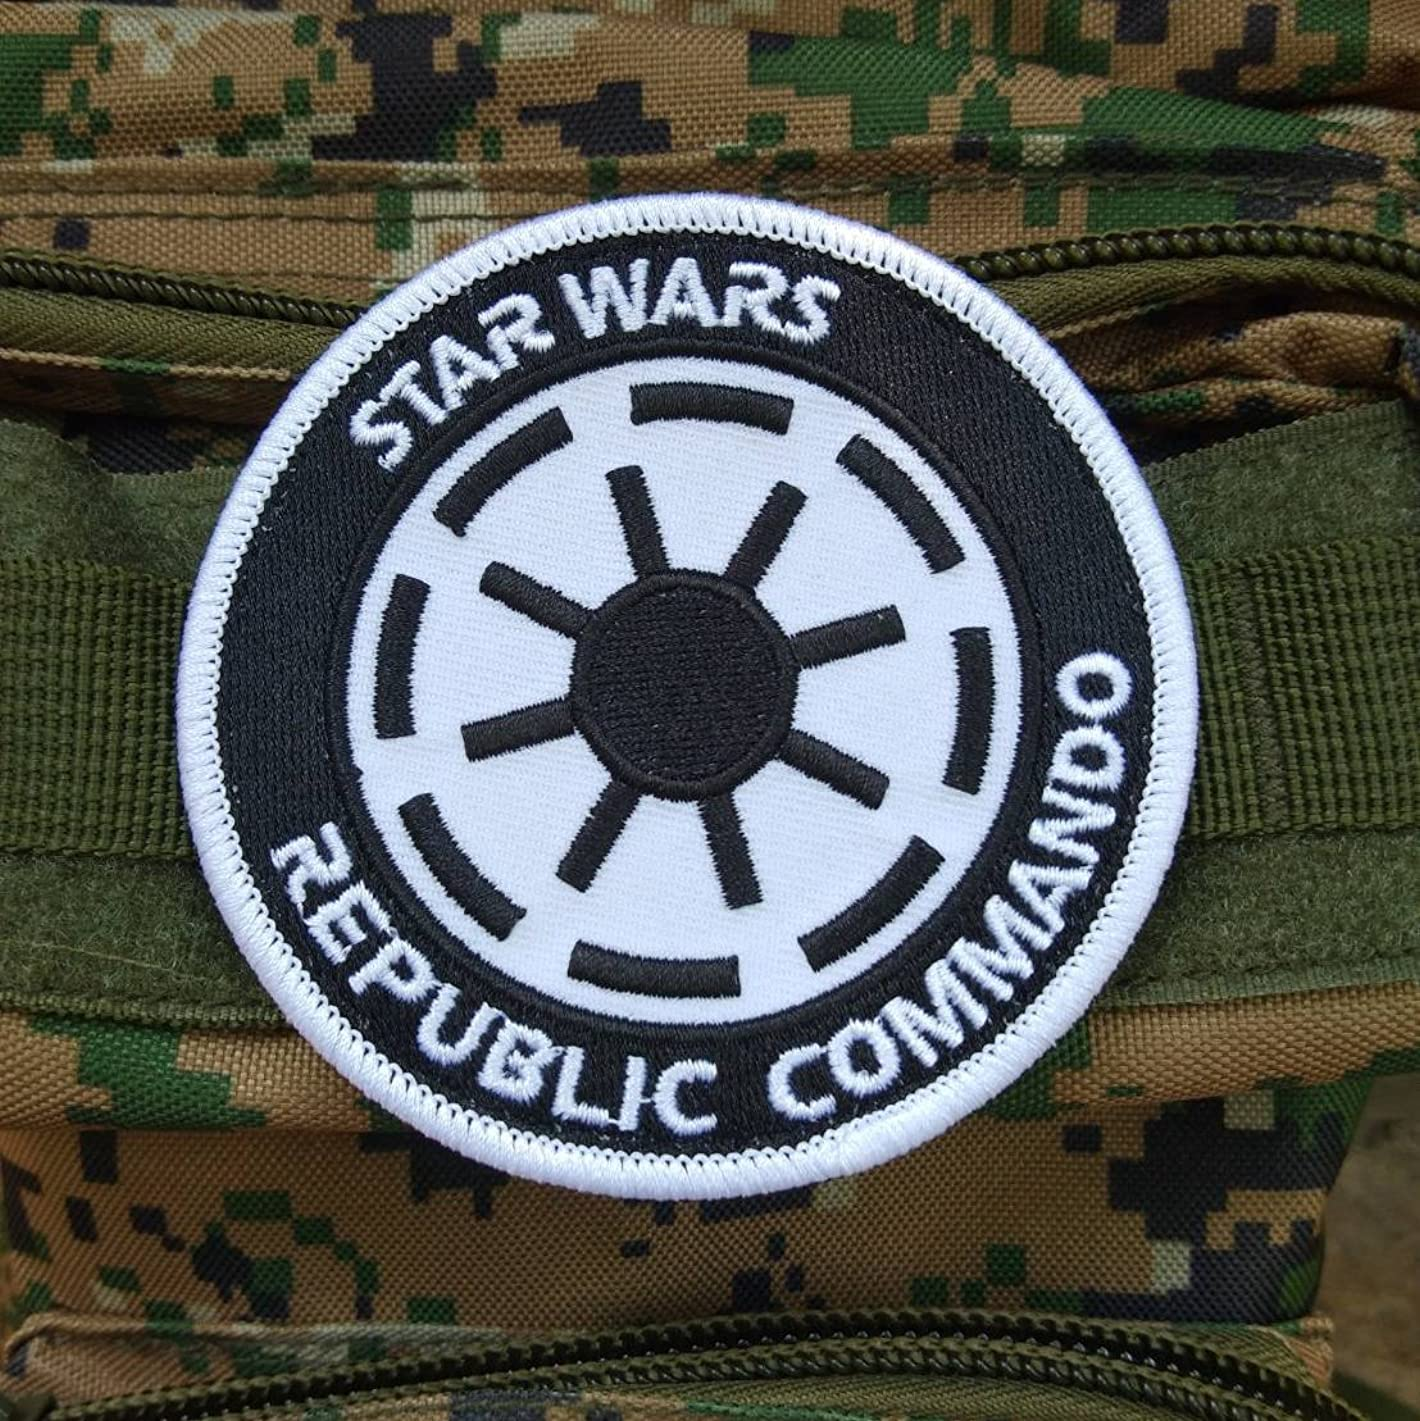 LiZMS Tactical Patch : Star Wars Republic Commando - Hook and Loop Fasteners